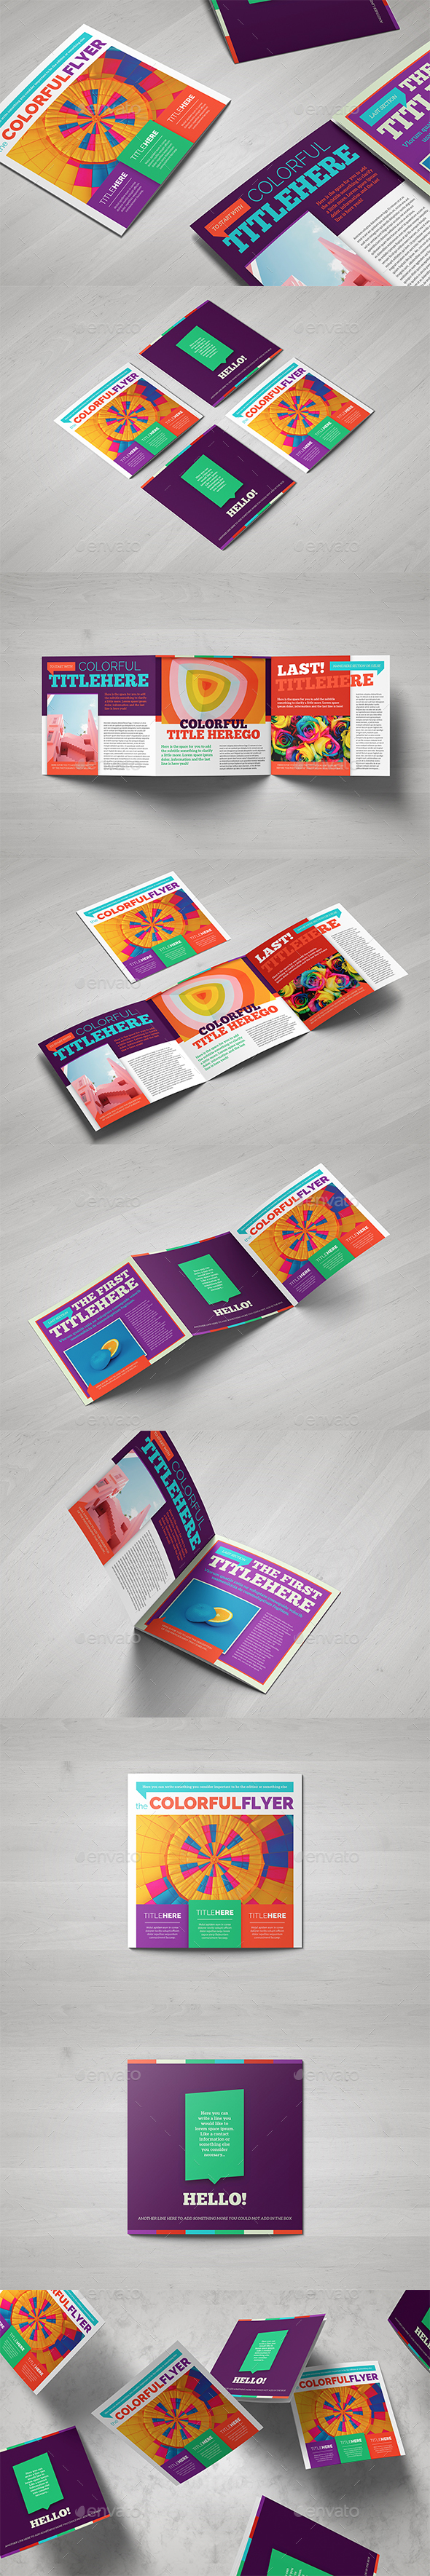 Colorful Square Brochure Template - Brochures Print Templates